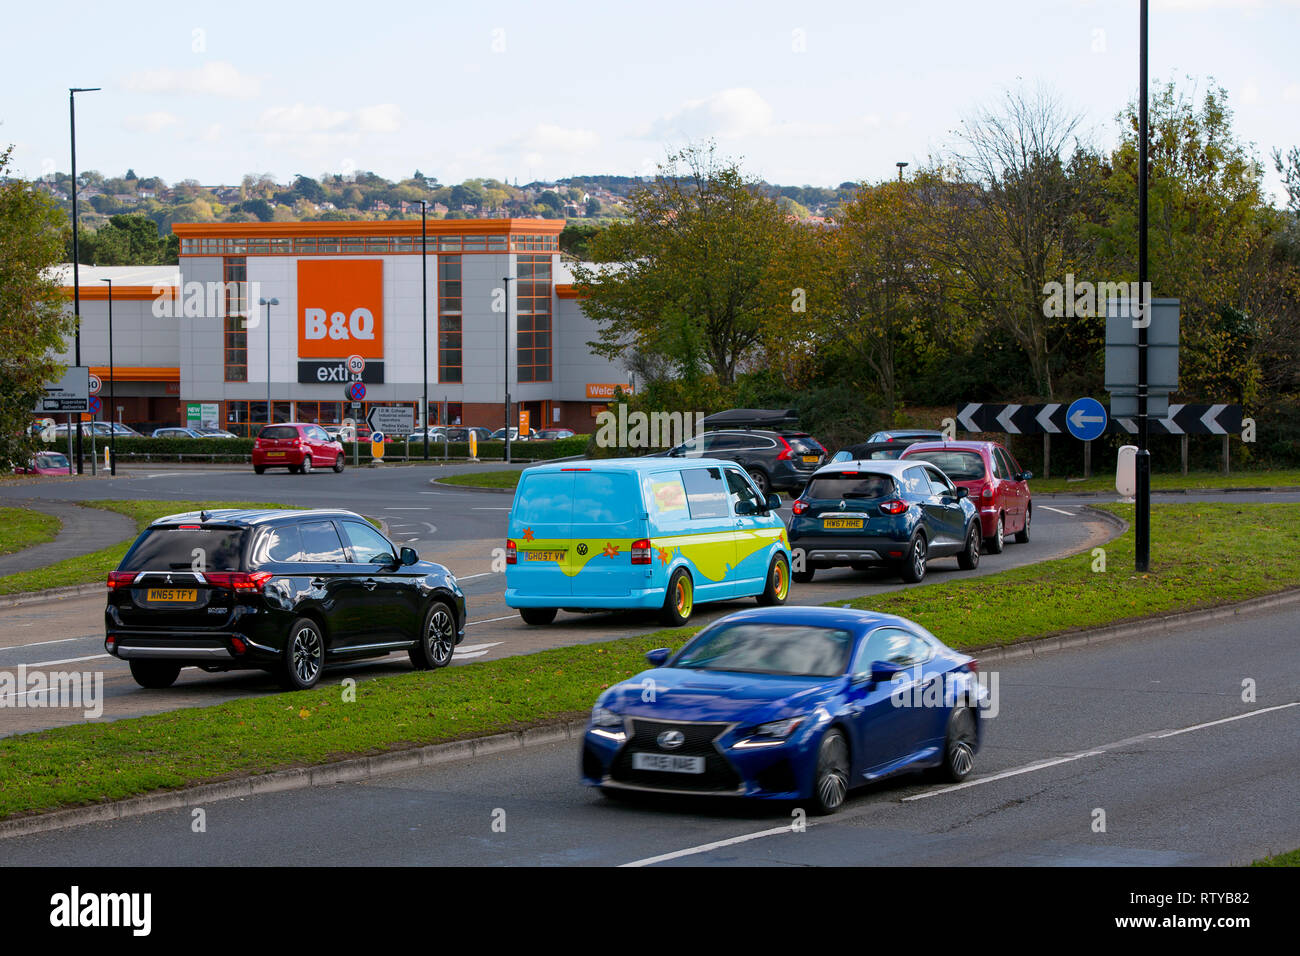 B&Q, St Mary's Roundabout, Duel carriageway, Newport, Isle of Wight, England, UK, - Stock Image